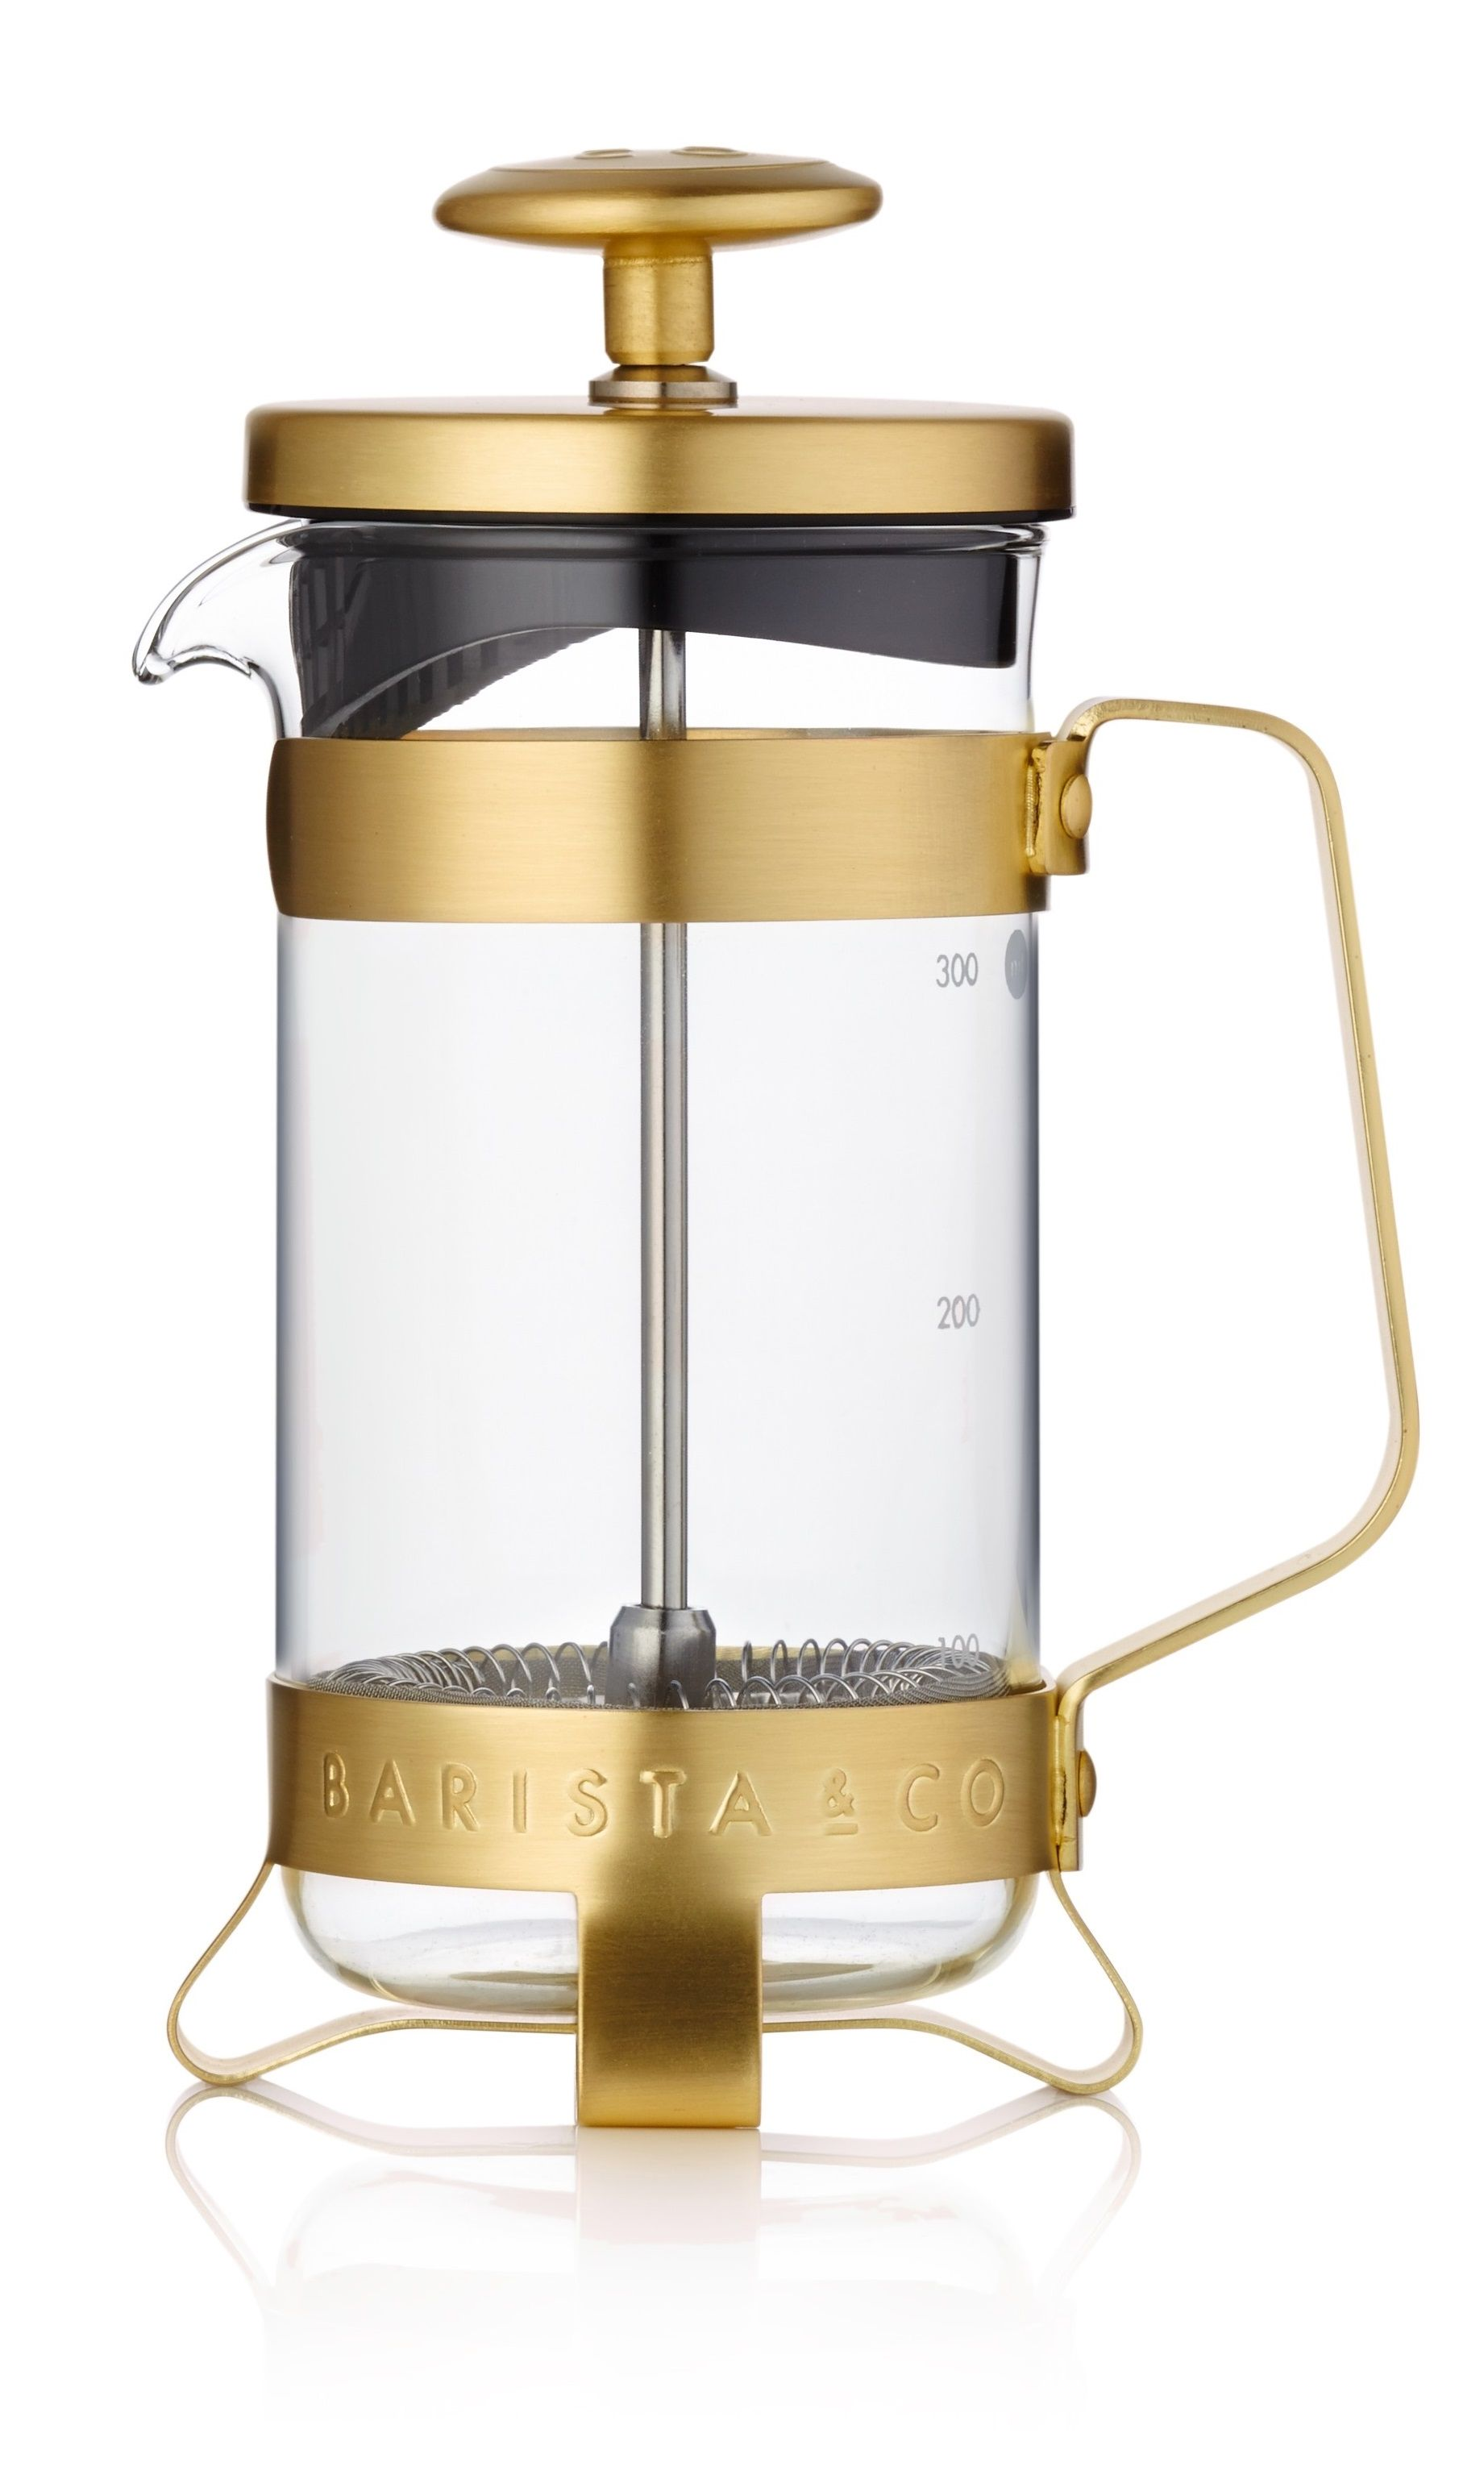 Barista & Co Cafetiere